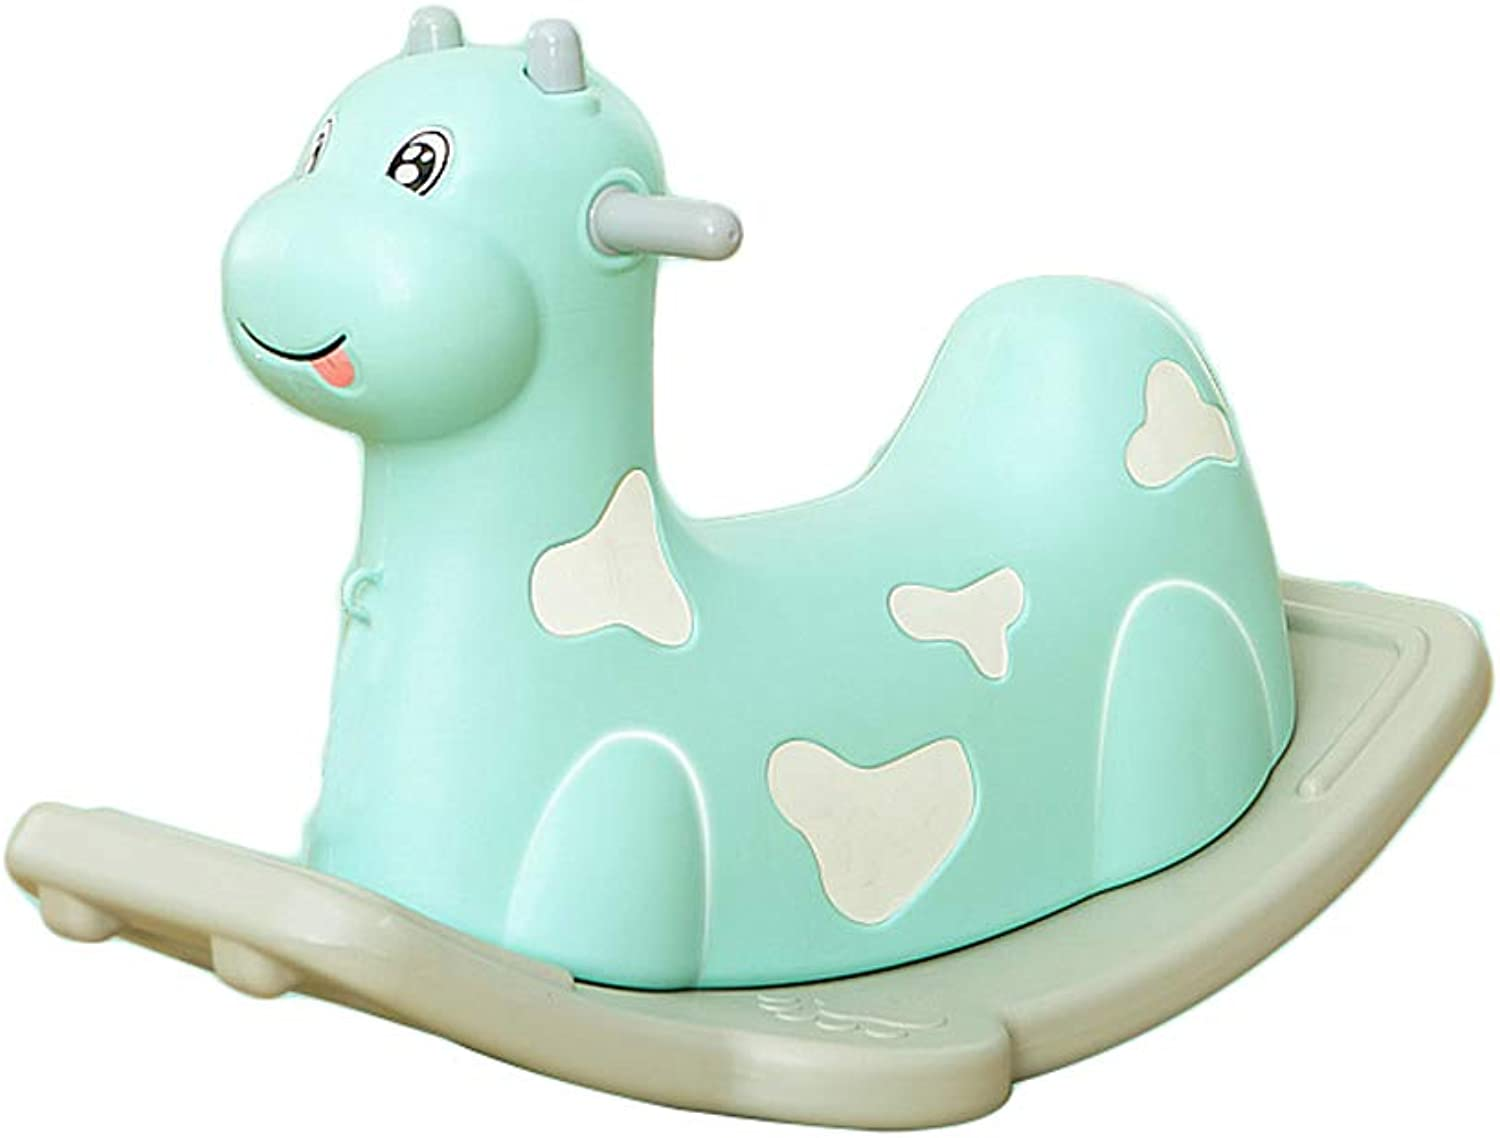 LITING Plastic Rocking Horse Toy Baby Rocking Horse Size Thickening Baby Age (color   Green)